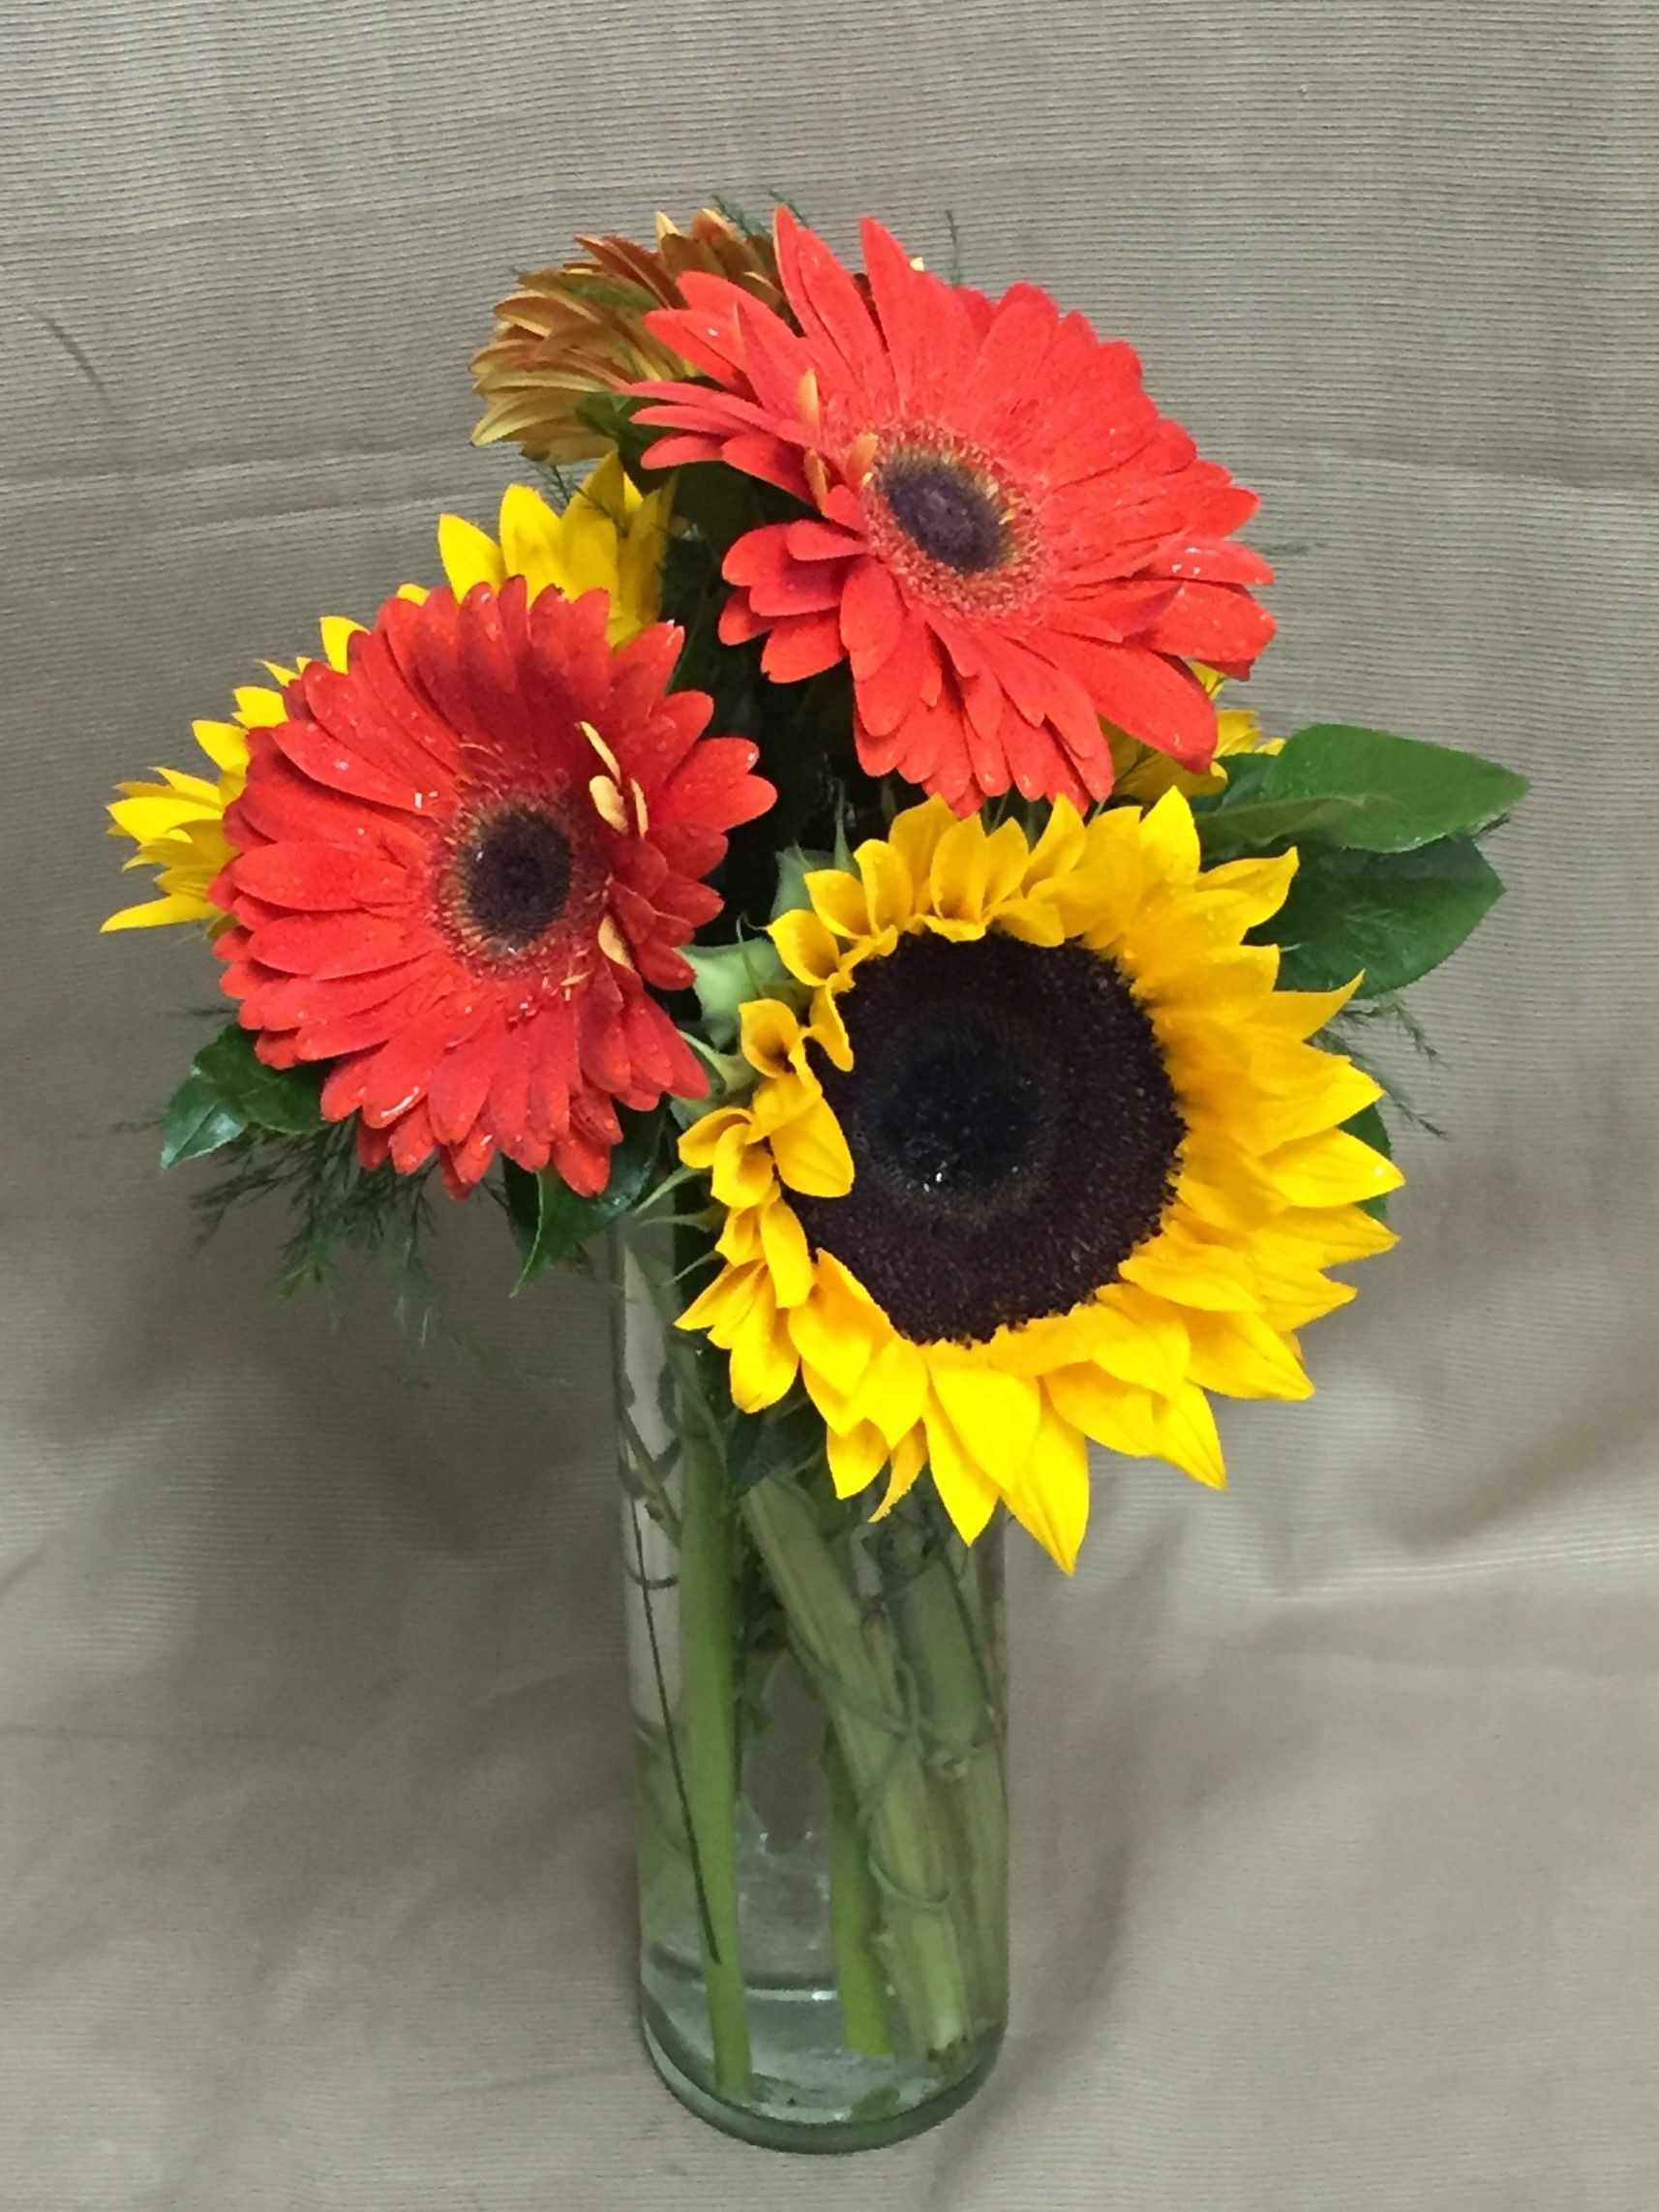 tall gold cylinder vases of brilliant birthday yellow sunflowers orange gerbera daisies salal for brilliant birthday yellow sunflowers orange gerbera daisies salal and tree fern in a tall cylinder vase